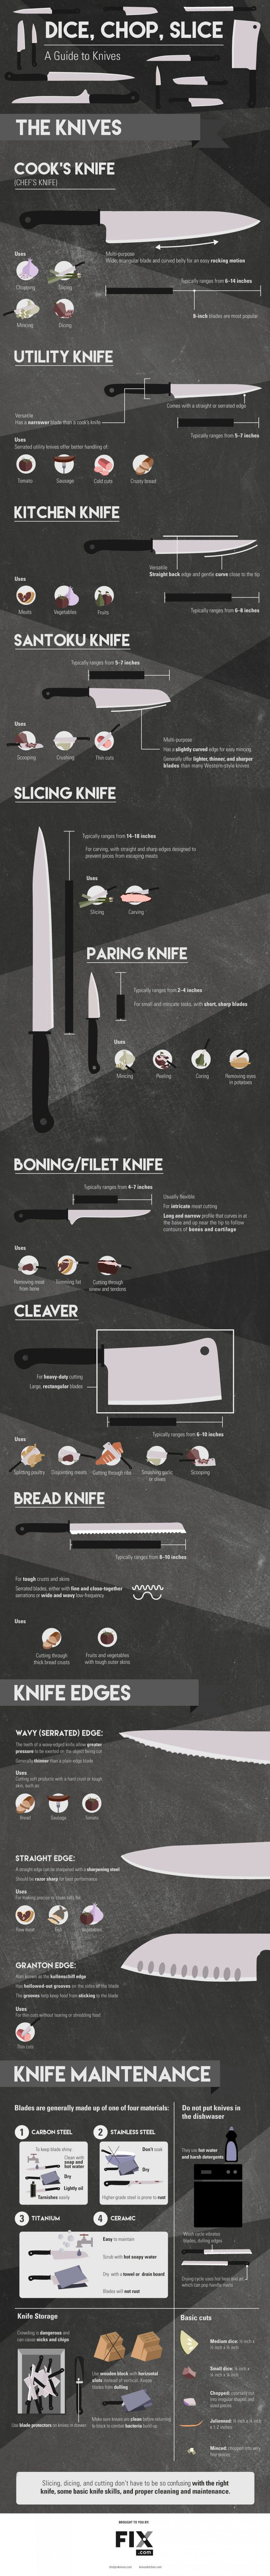 Dice, Chop, and Slice: A Guide to Knives Infographic